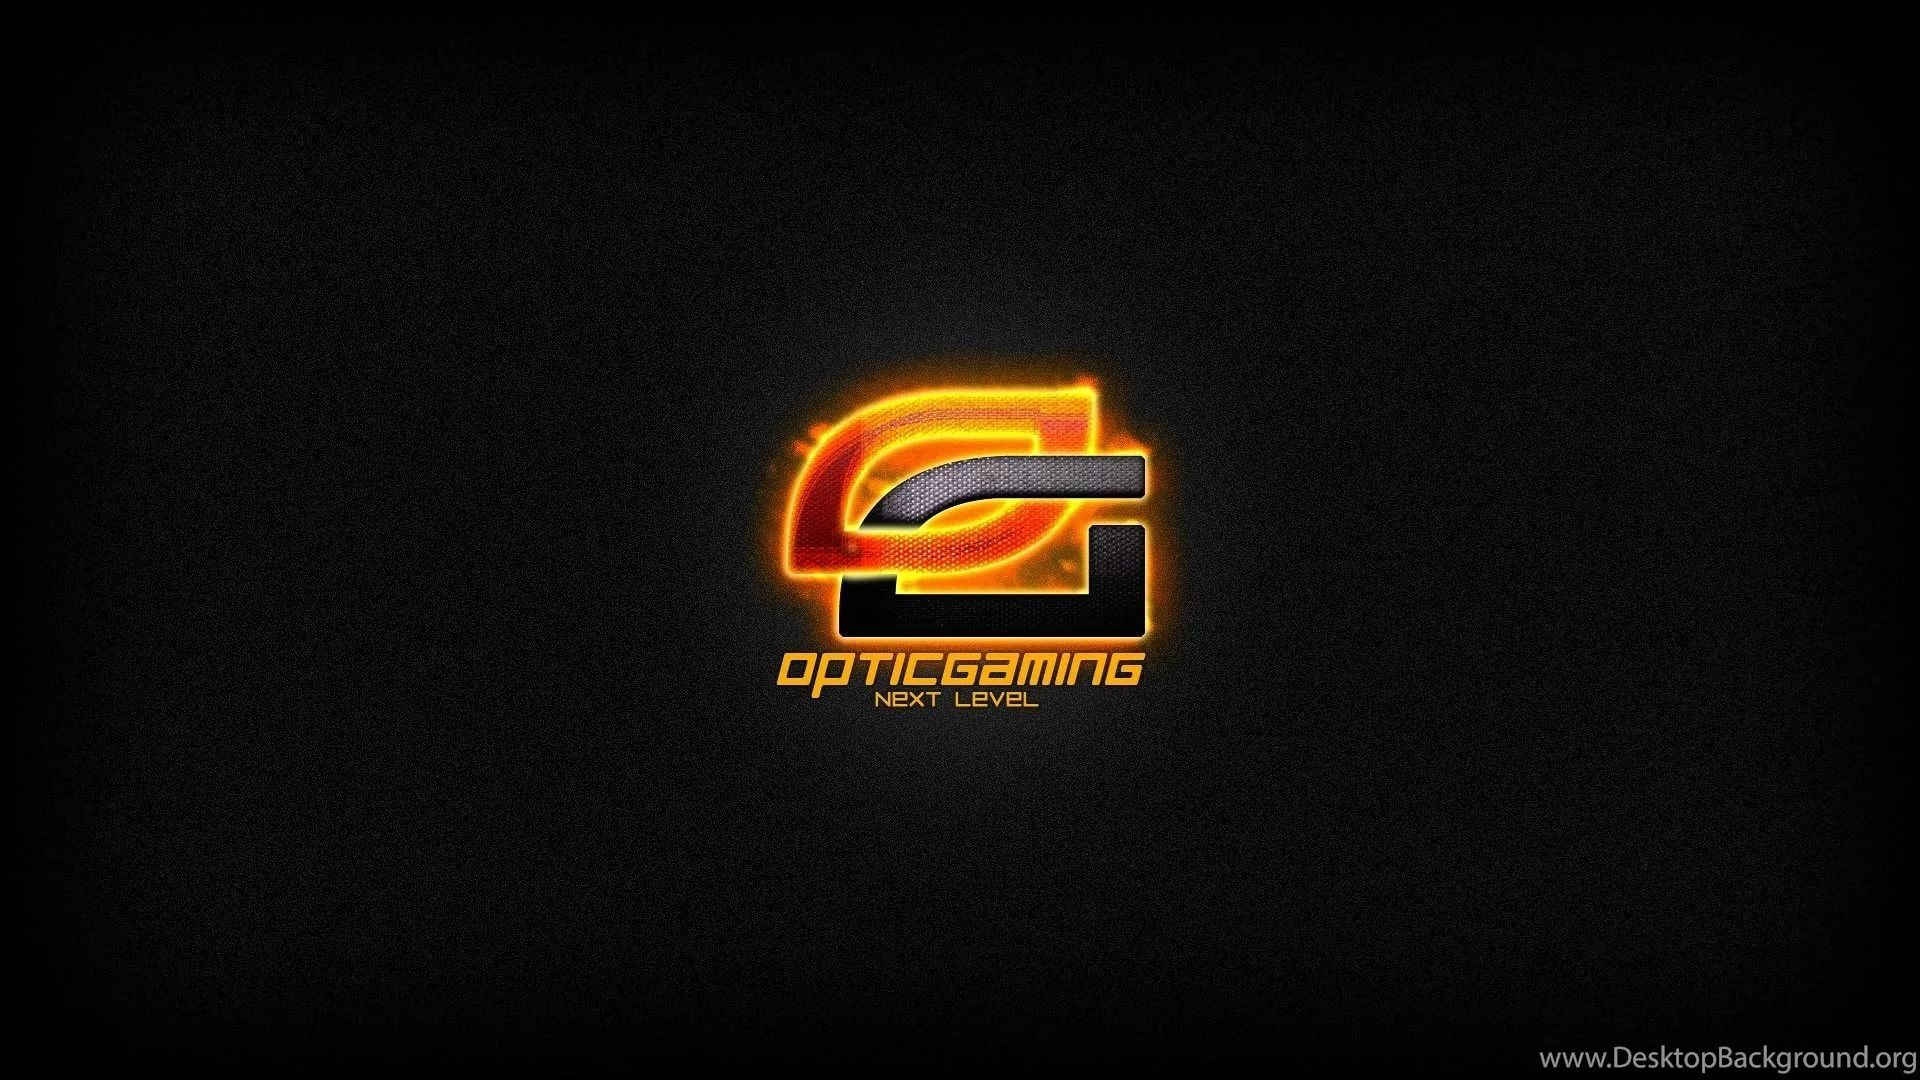 Optic Gaming hd wallpaper for laptop